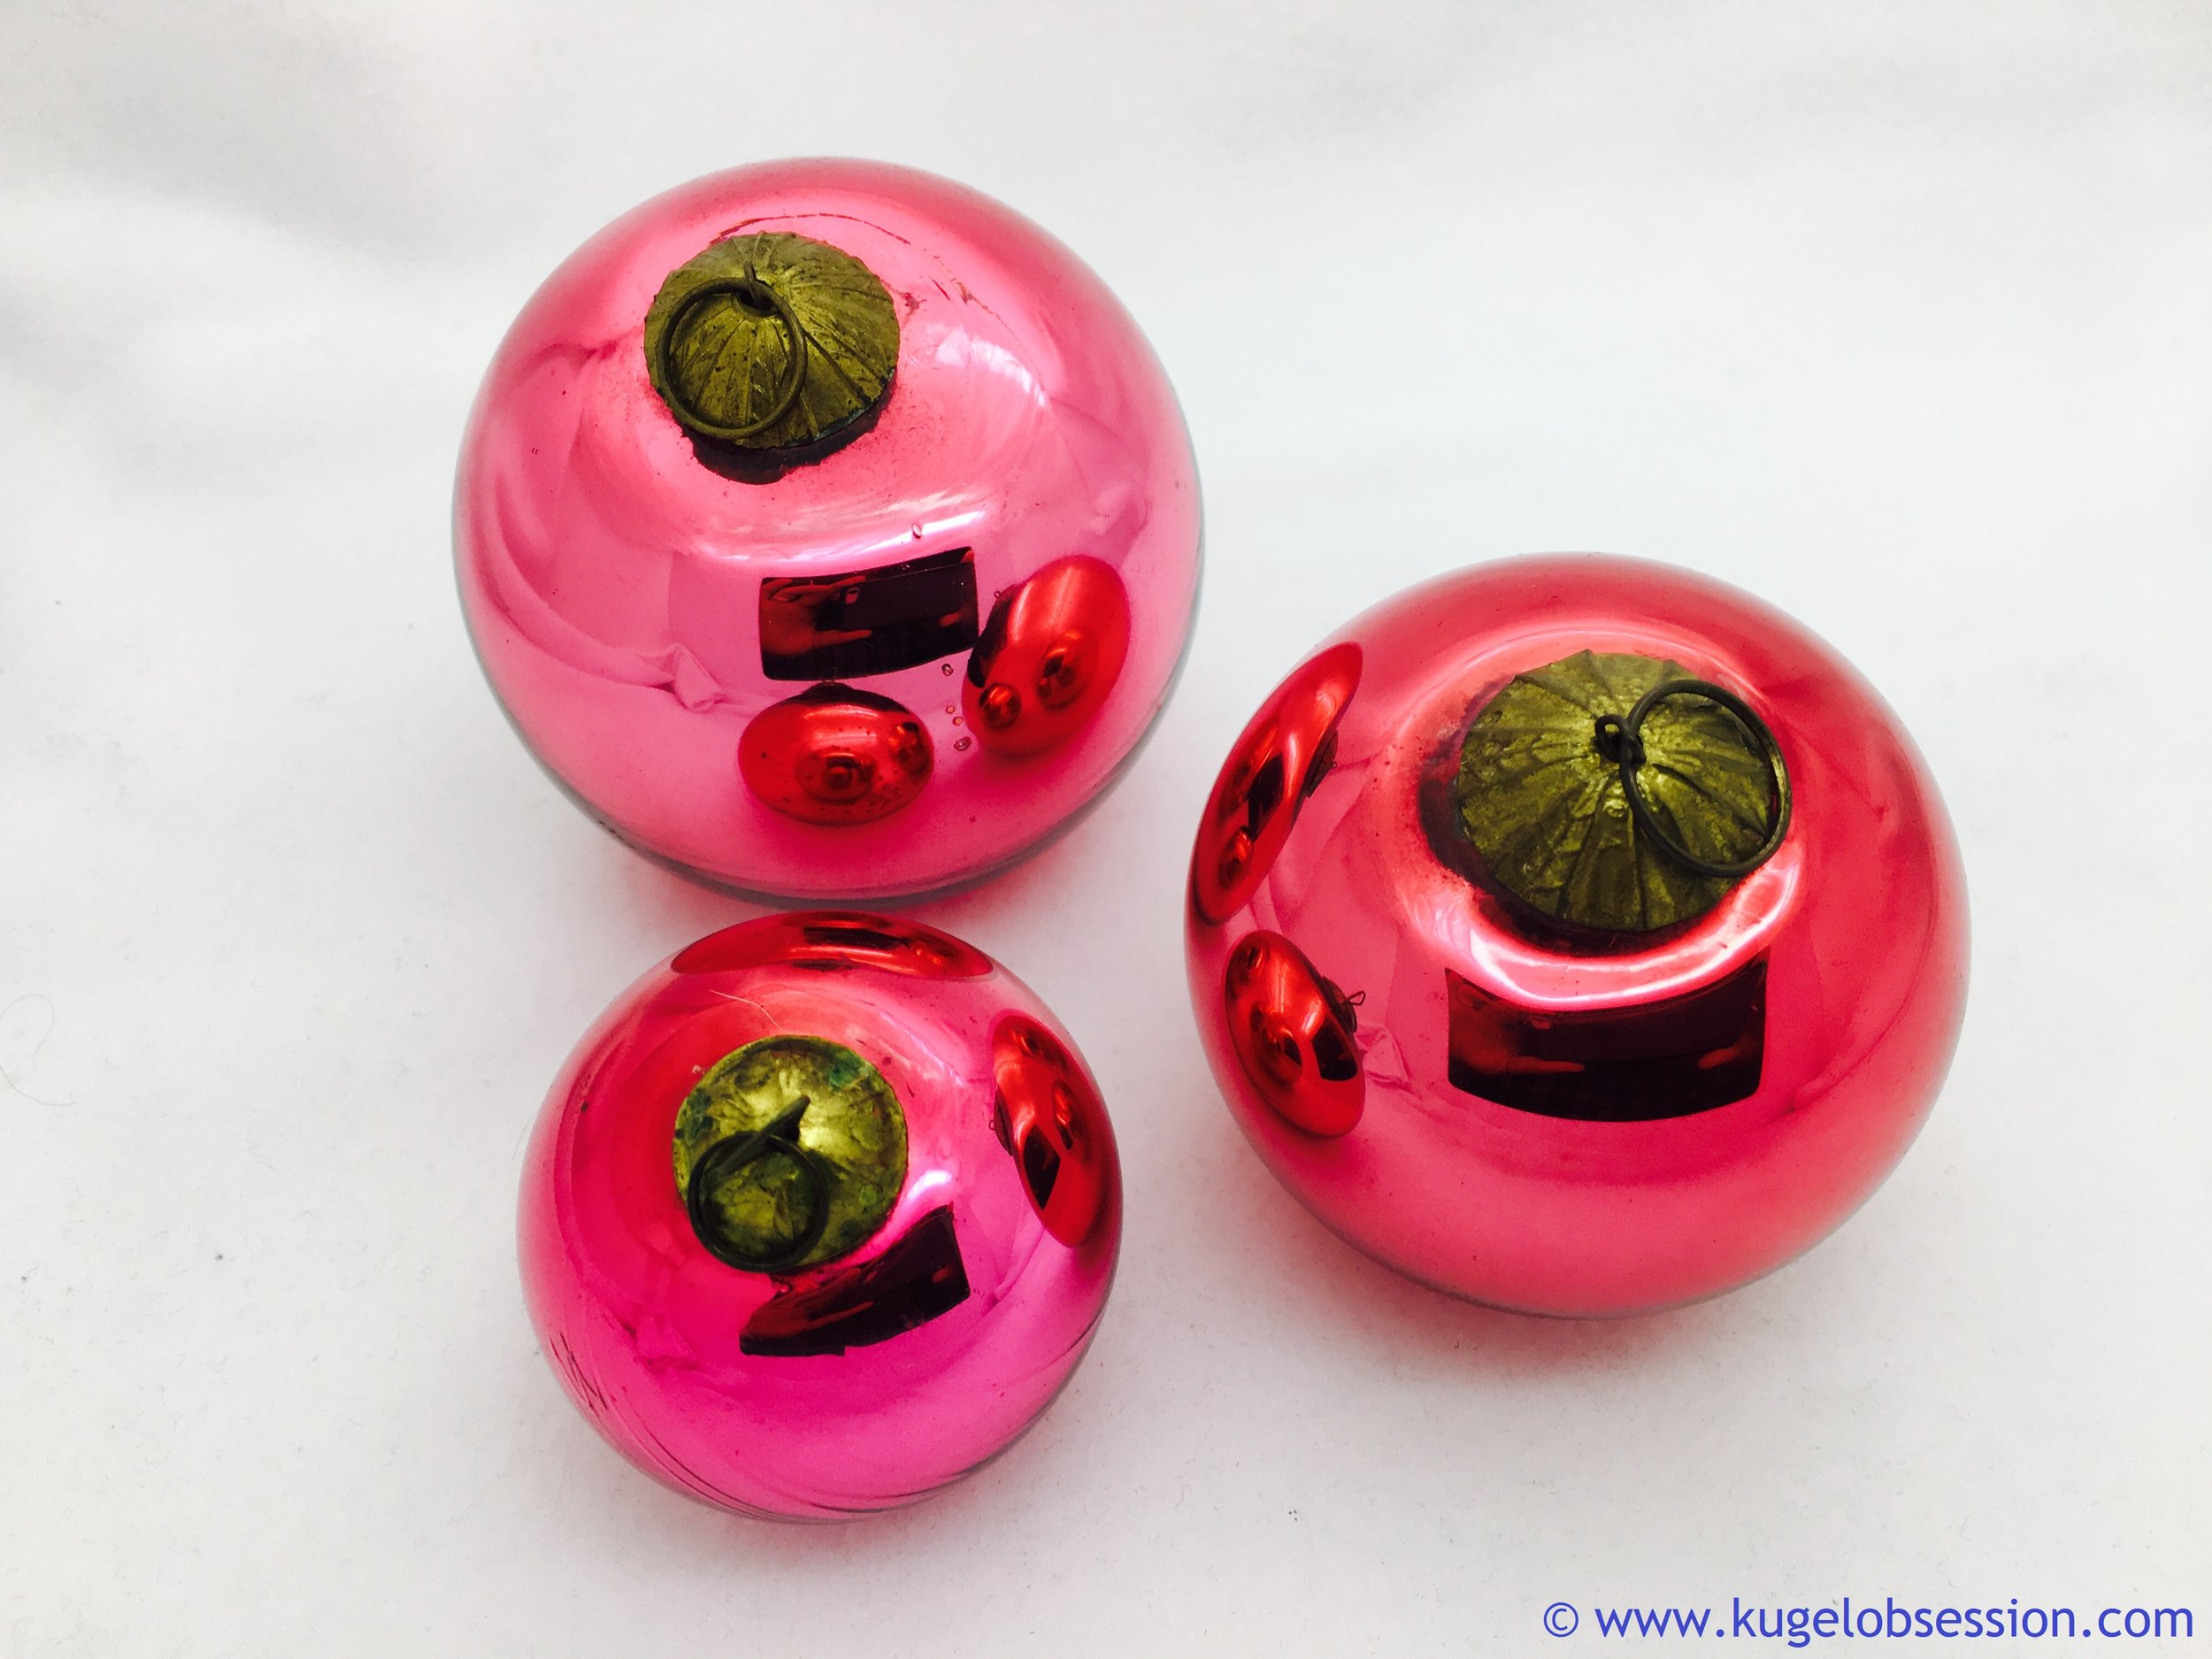 antique kugel christmas ornament for sale pink rounds 201709.jpg